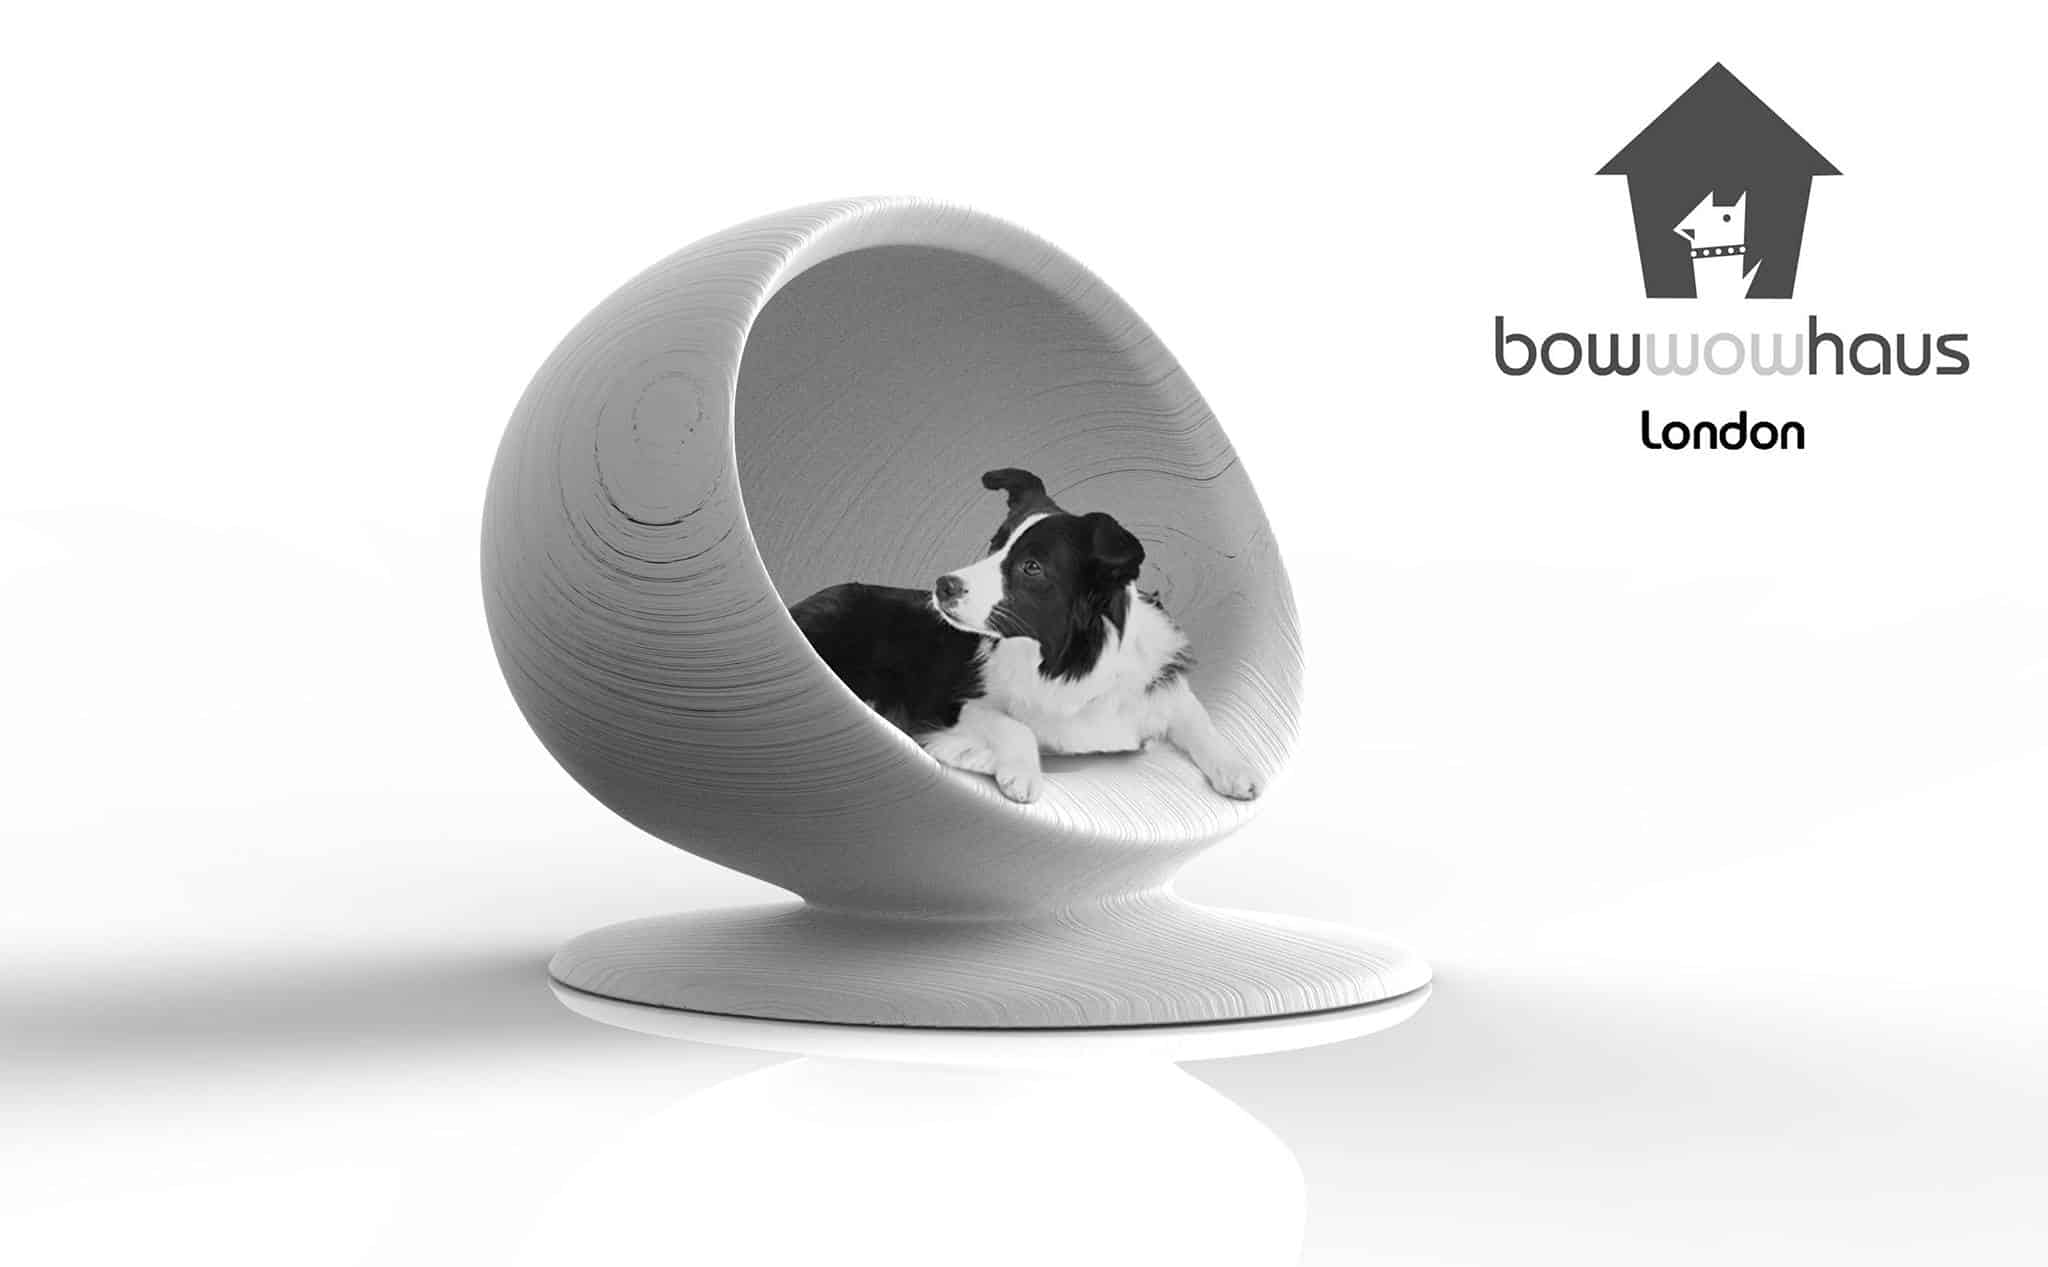 Things To Do With Your Dog In London - London Dog Events - BowWow Haus London